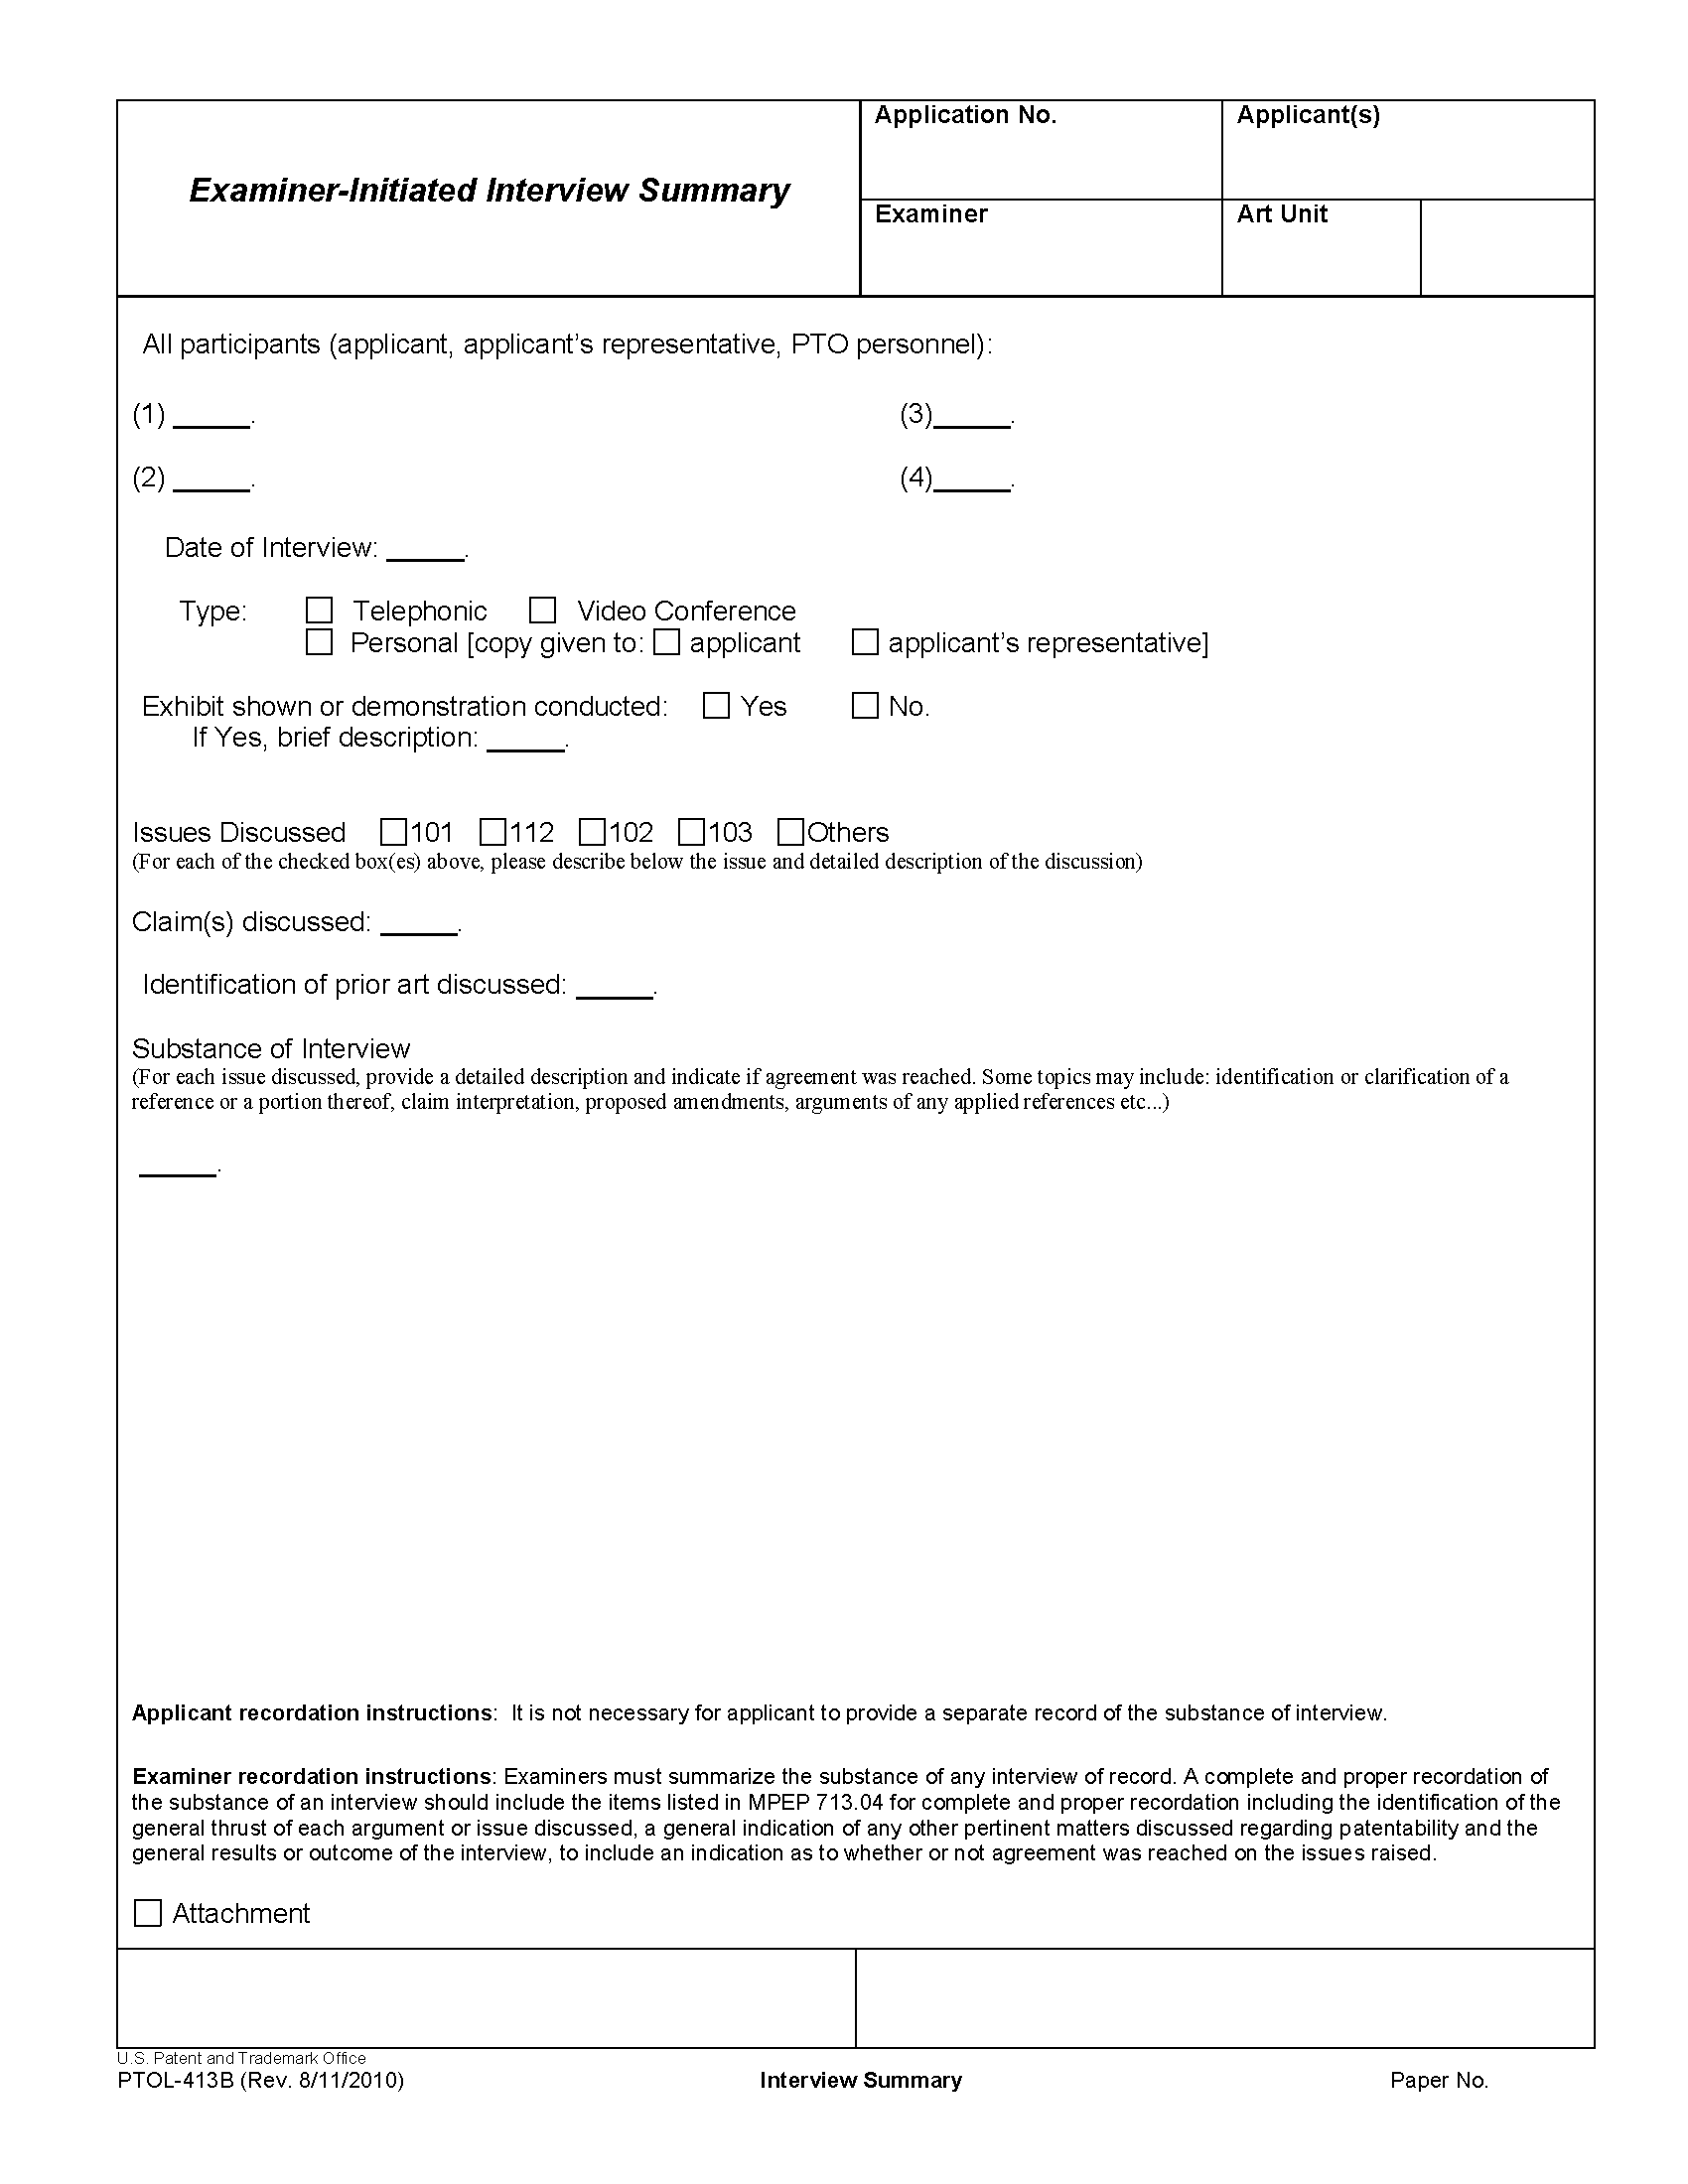 manual for filling out trademarking application